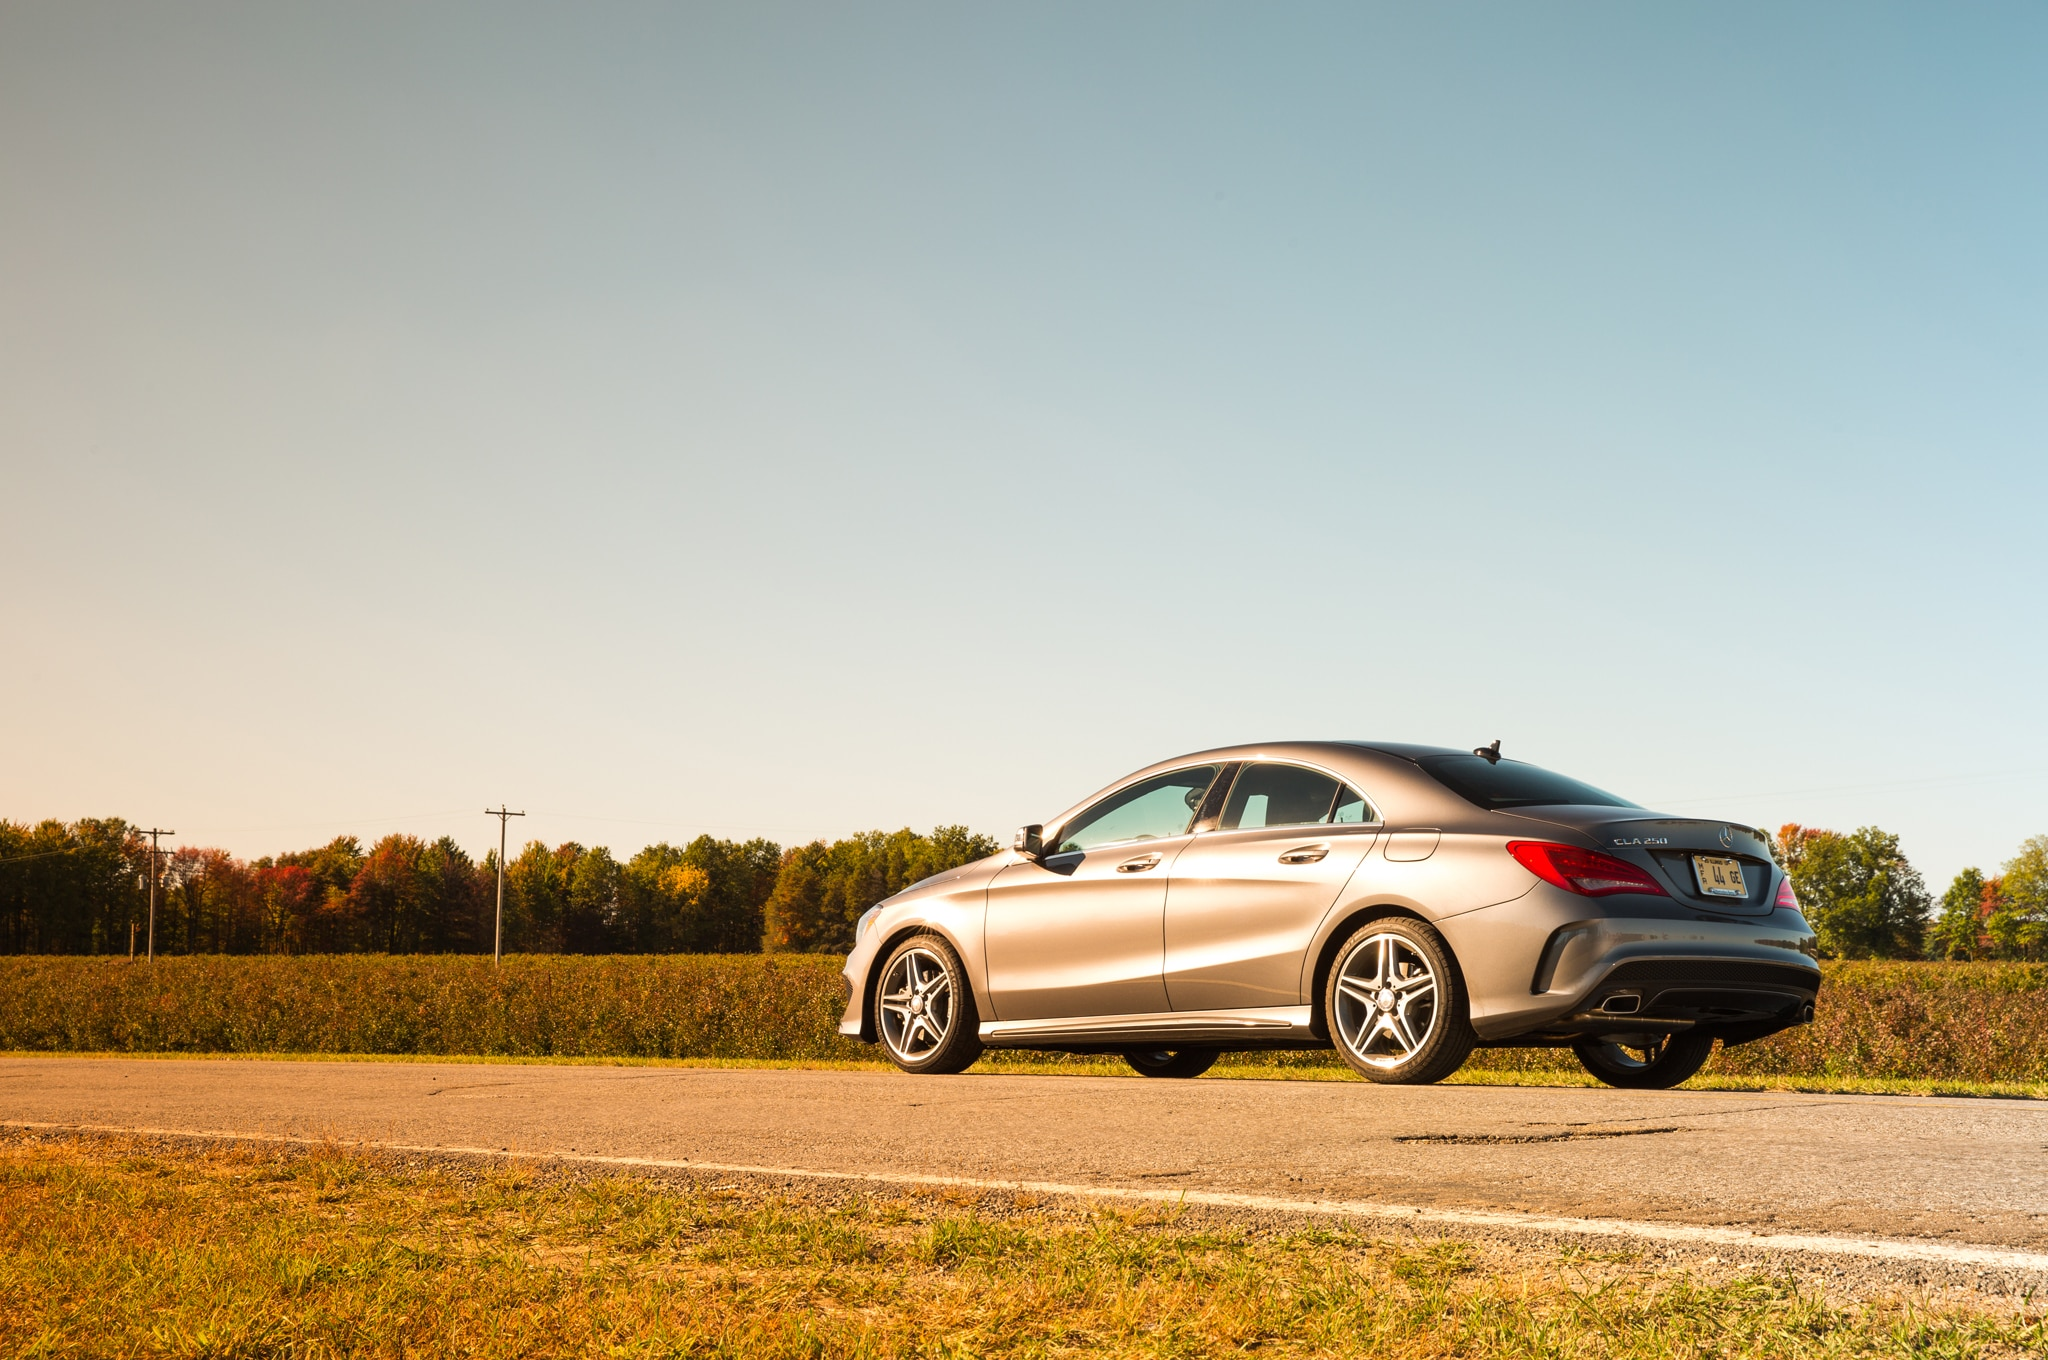 2014 Mercedes Benz CLA250 Automobile Of The Year Contender 21